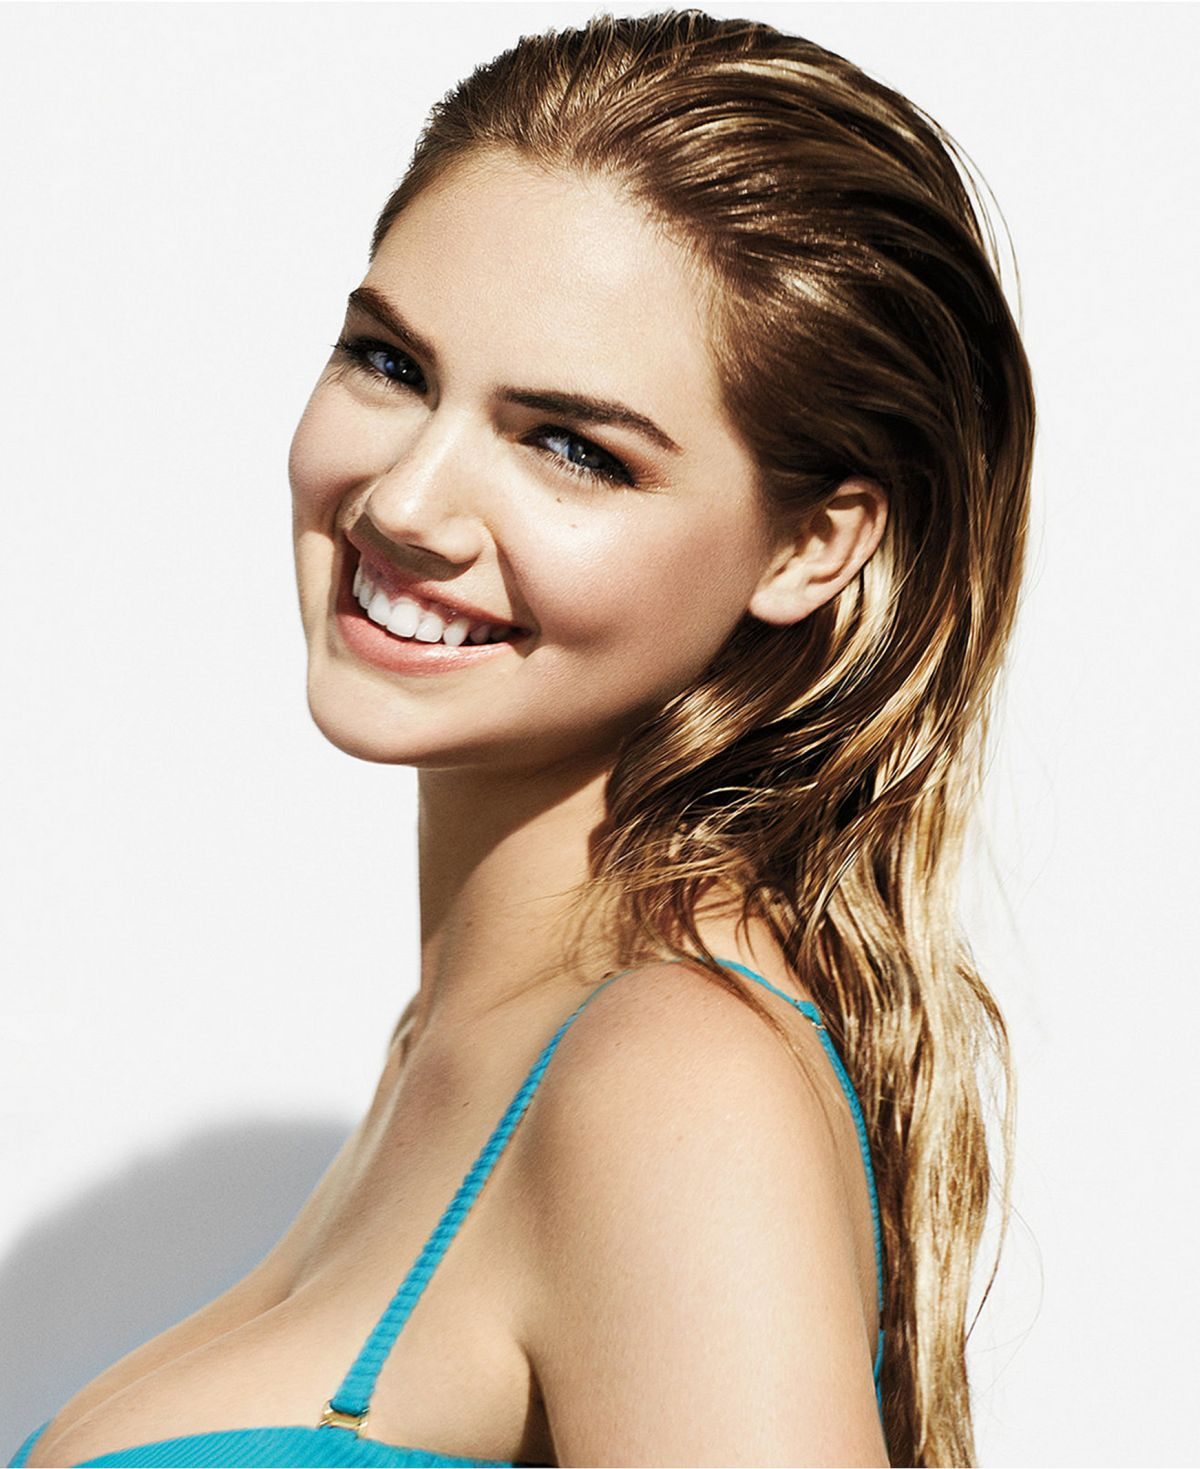 KATE UPTON - Bobbi Brown Sandy Nudes Makeup Collection